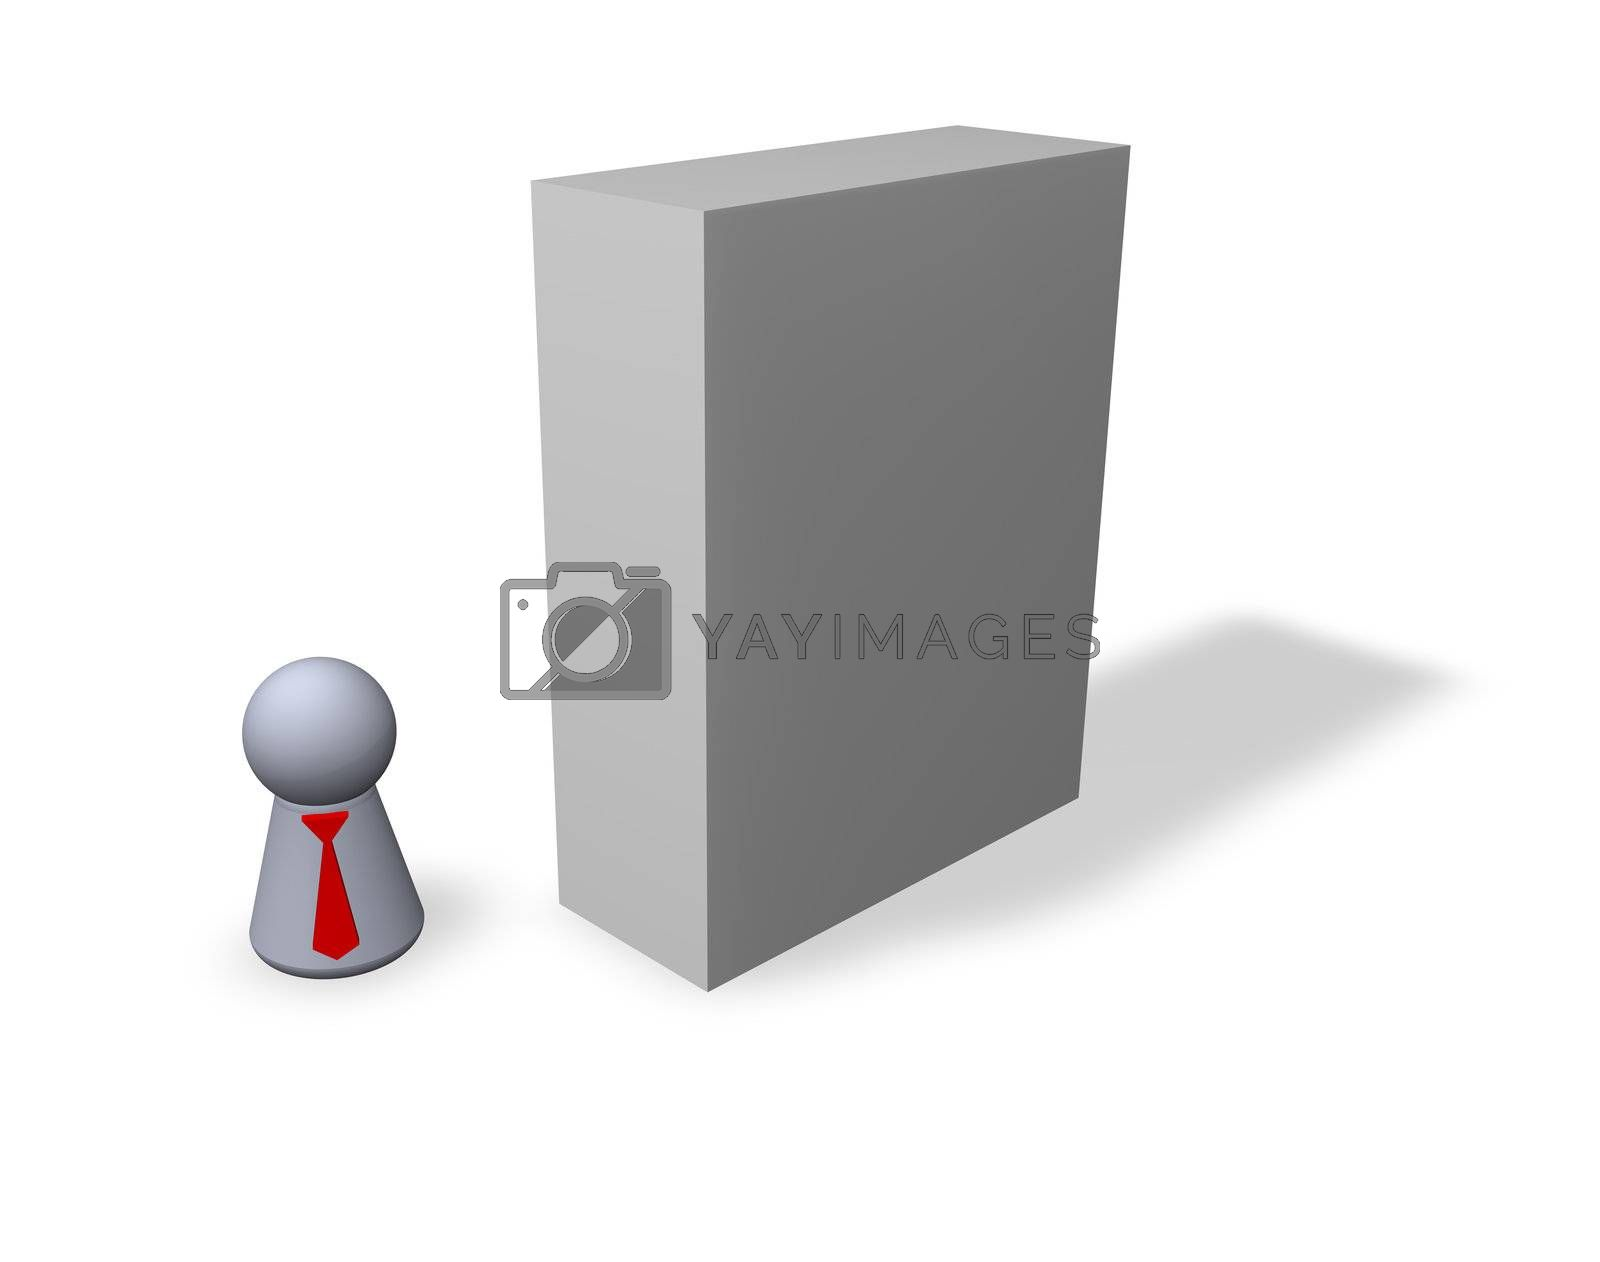 play figure businessman with red tie and blank software packing